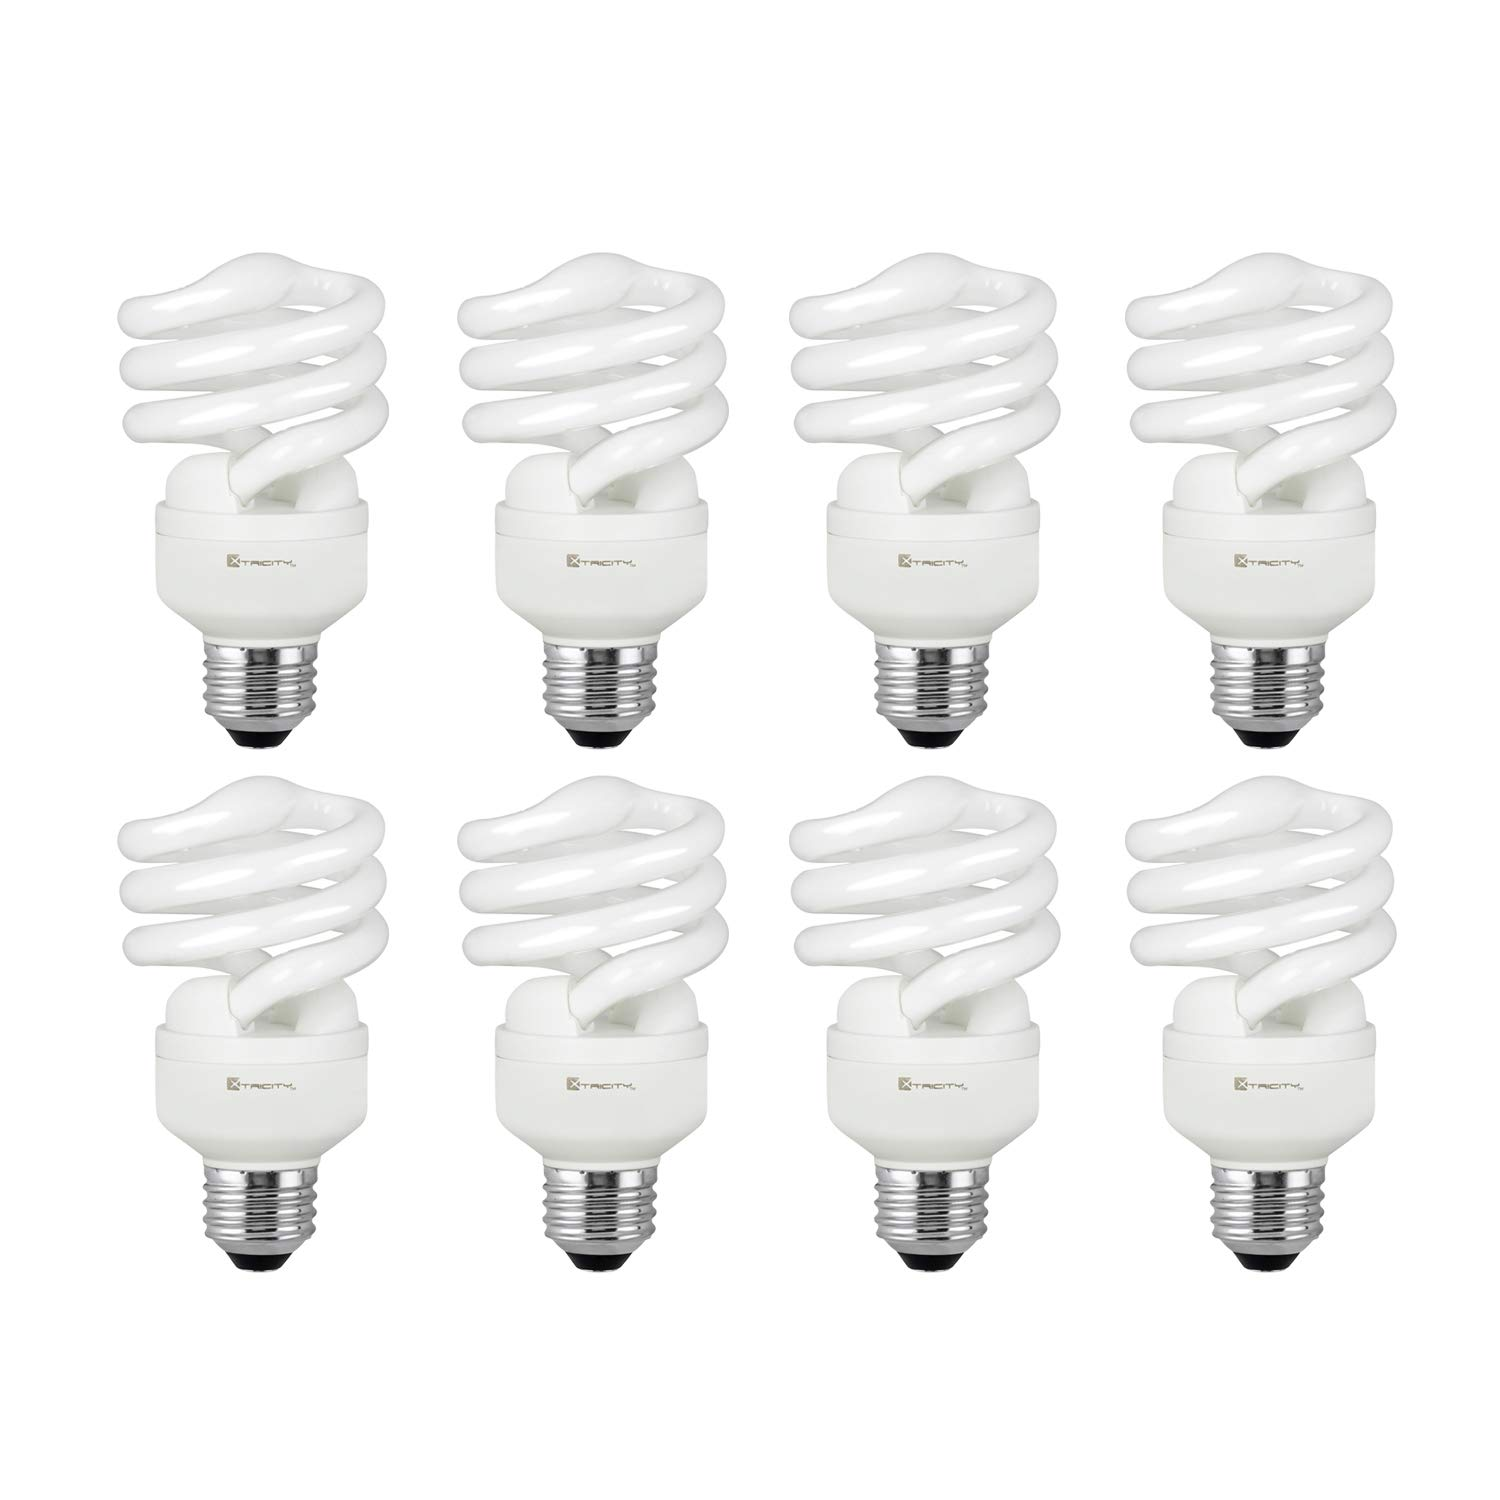 Compact Fluorescent Light Bulb T2 Spiral CFL, 5000k Daylight, 13W (60 Watt Equivalent), 900 Lumens, E26 Medium Base, 120V, UL Listed (Pack of 8)